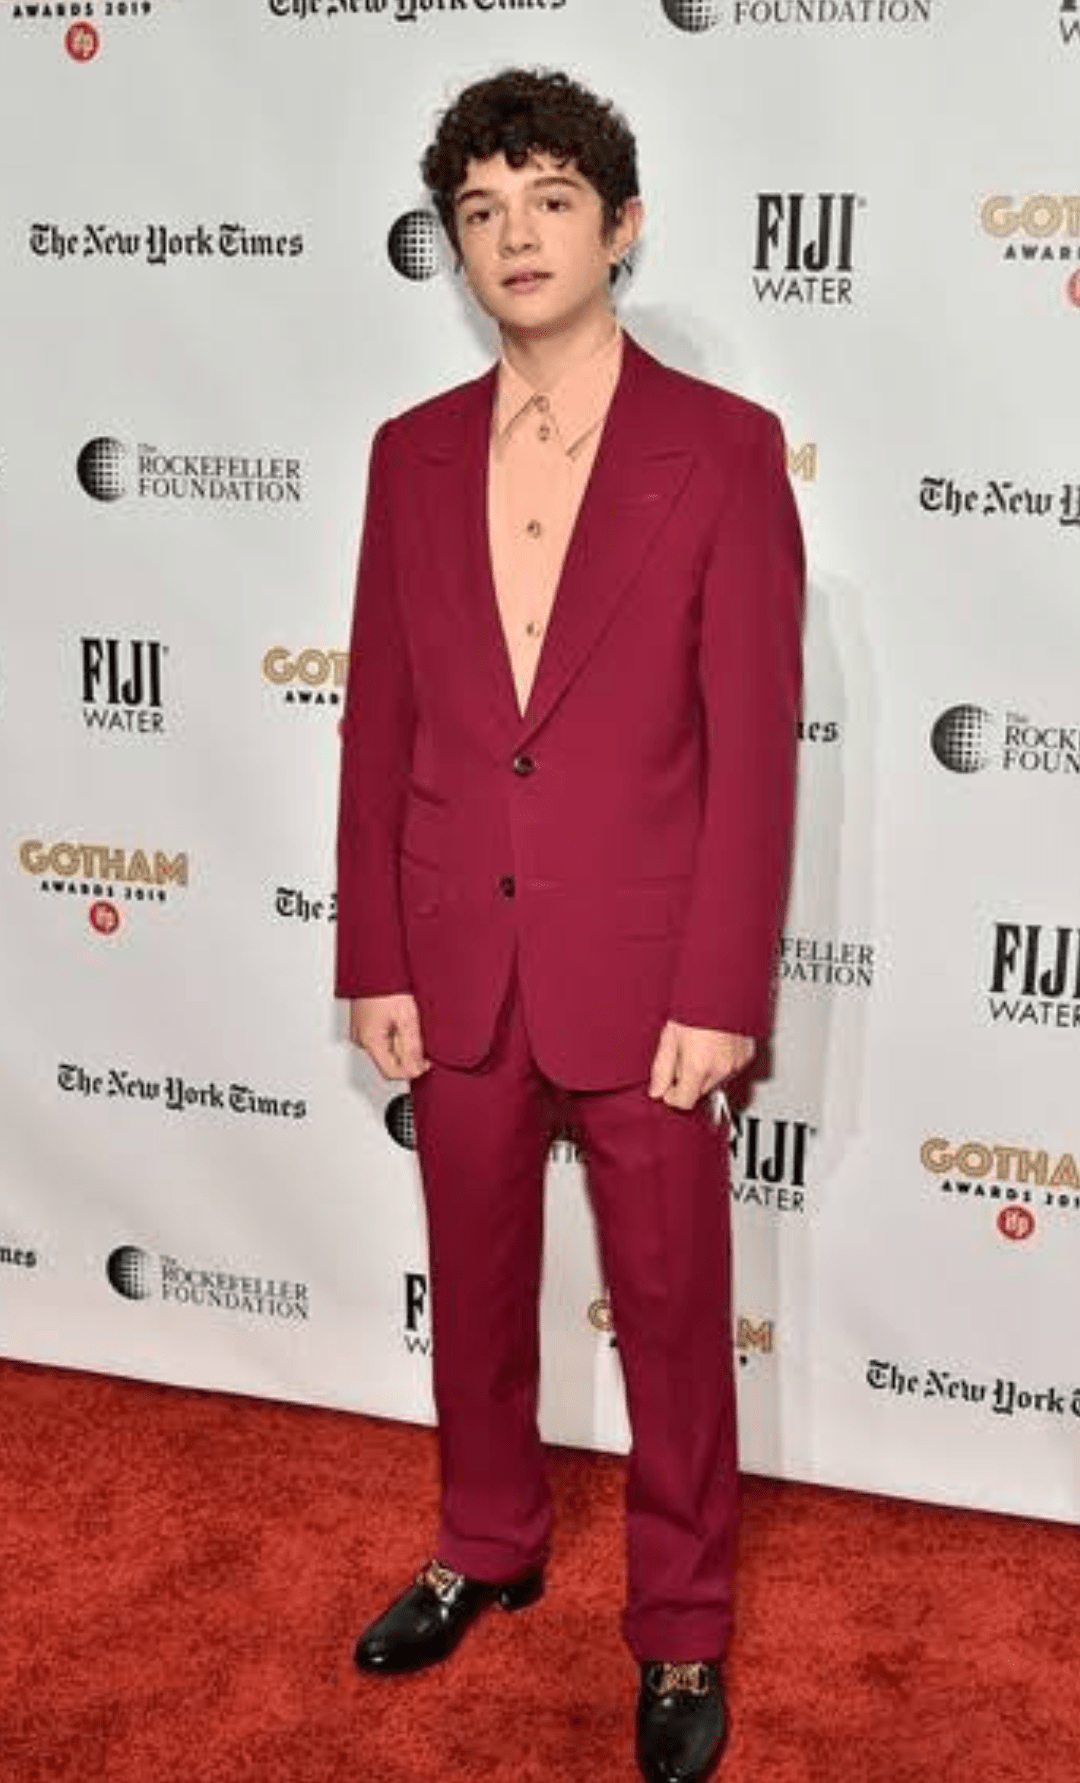 The Young American Actor In a Red Coat